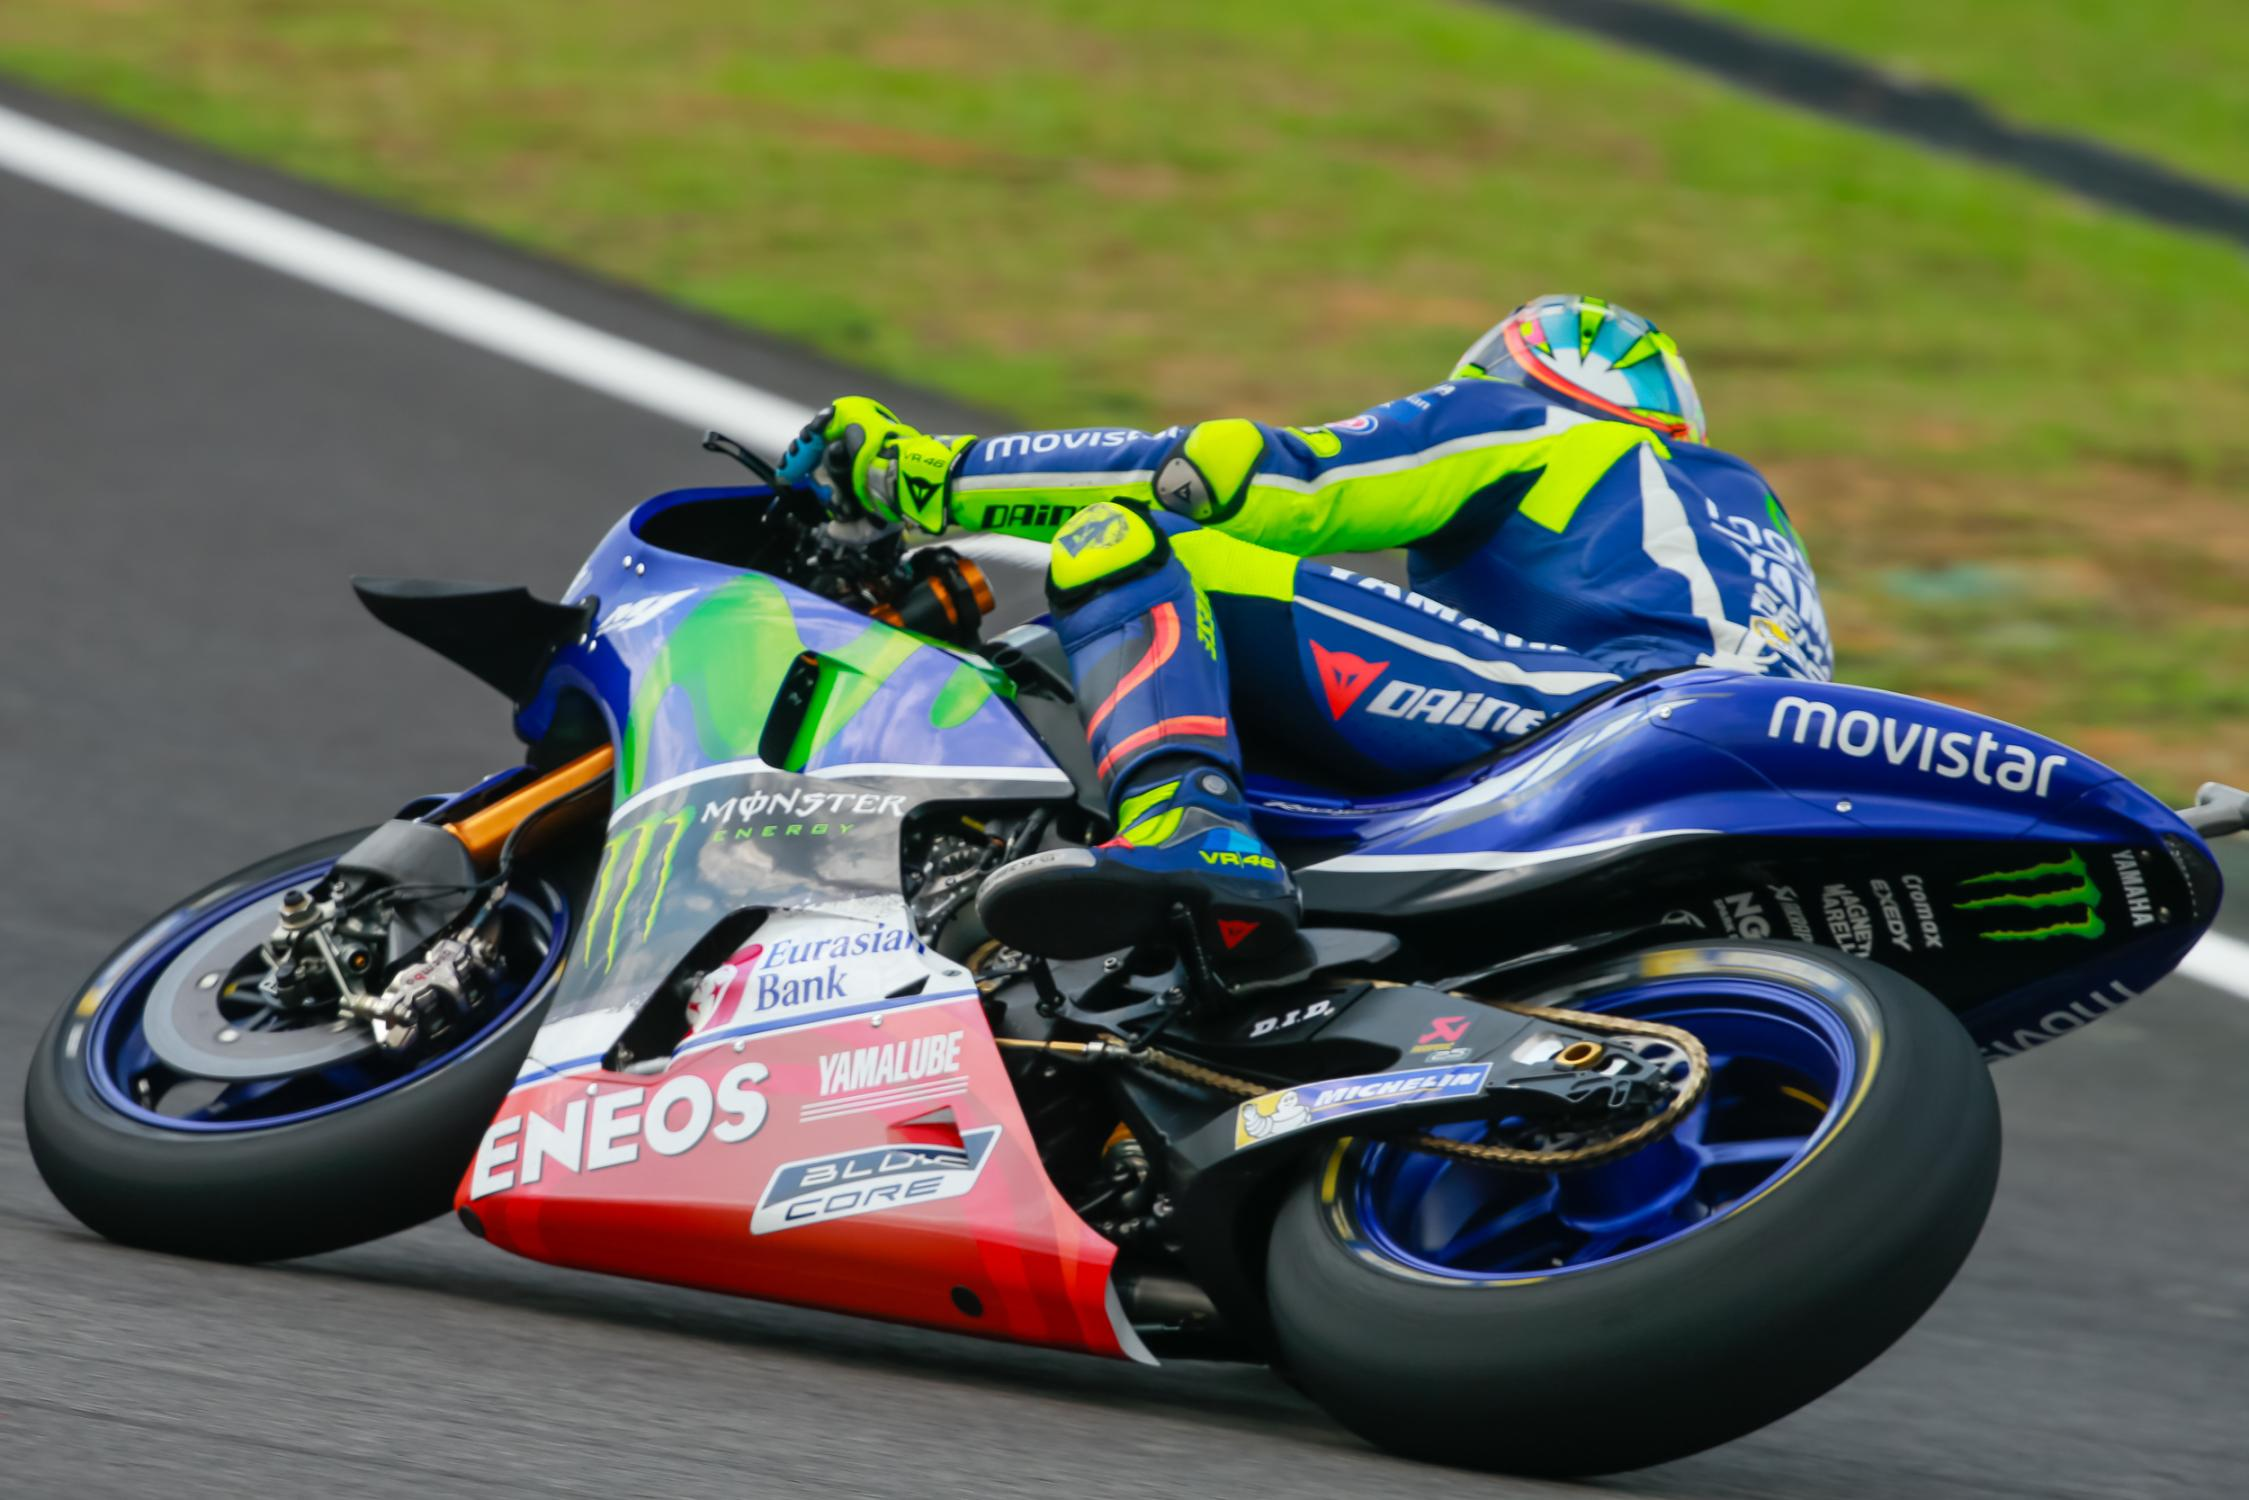 46-valentino-rossi-ita_gp_7063.gallery_full_top_fullscreen.jpg